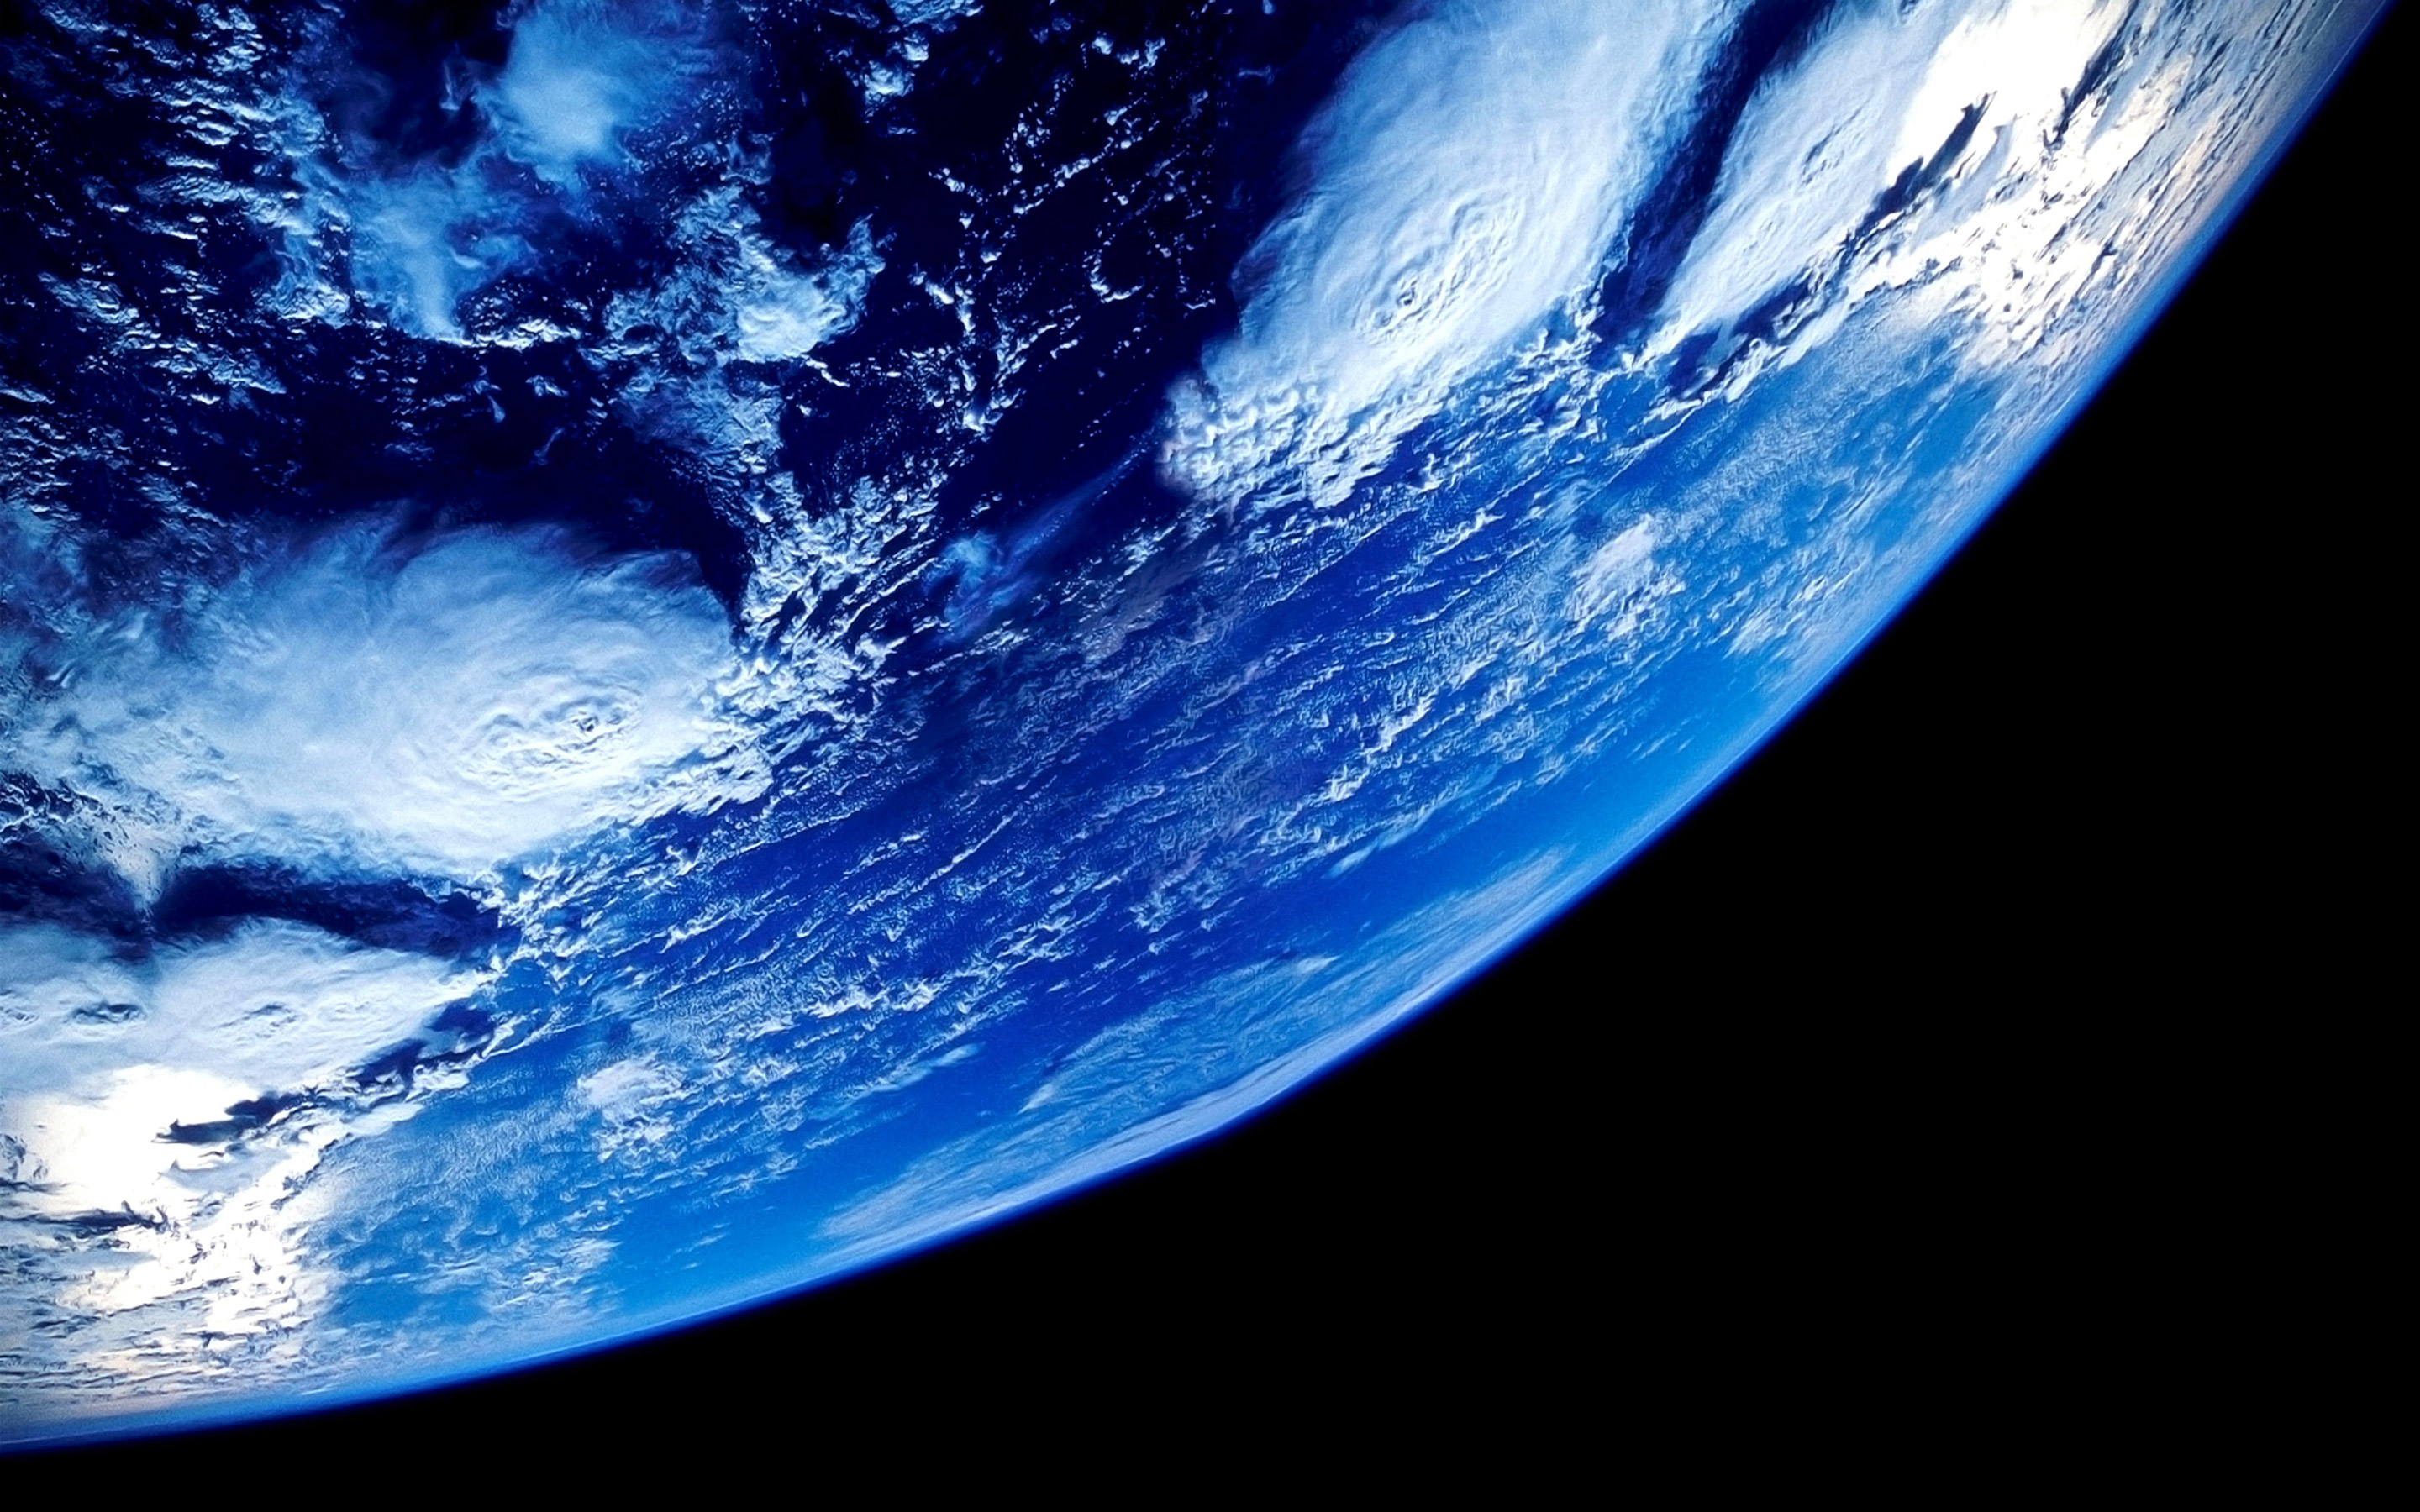 Earth From Space HD Wallpaper 2880x1800